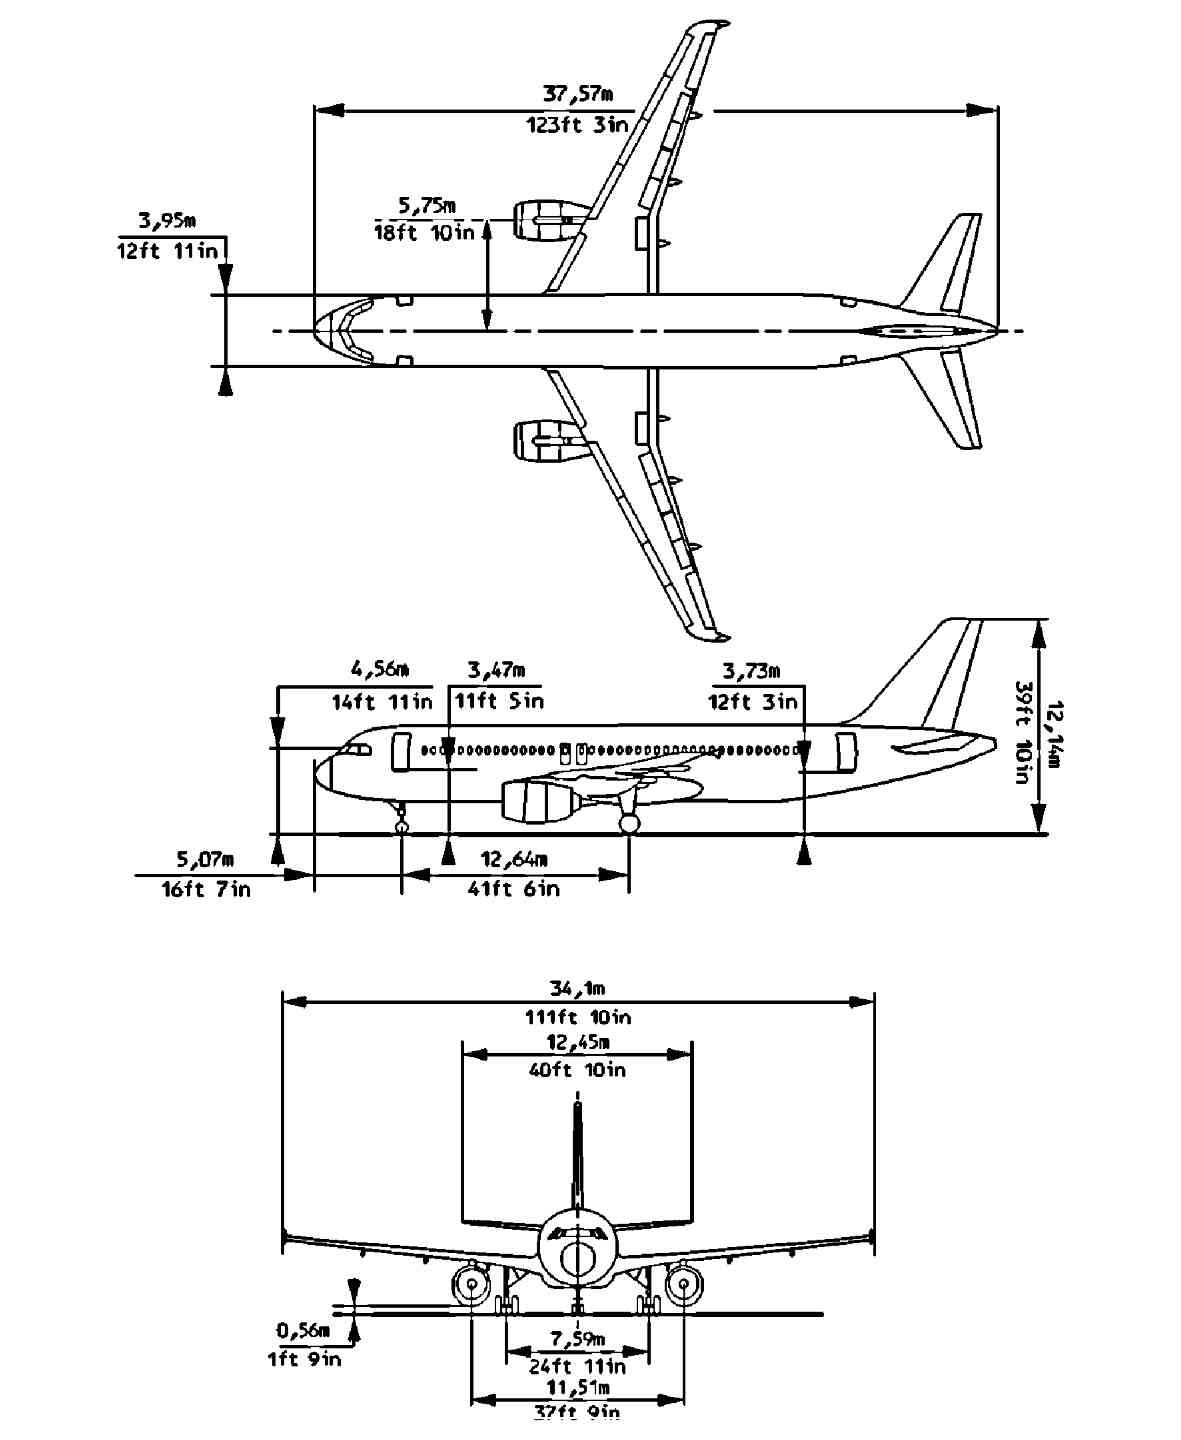 A320F technical description: AIRCRAFT GENERAL